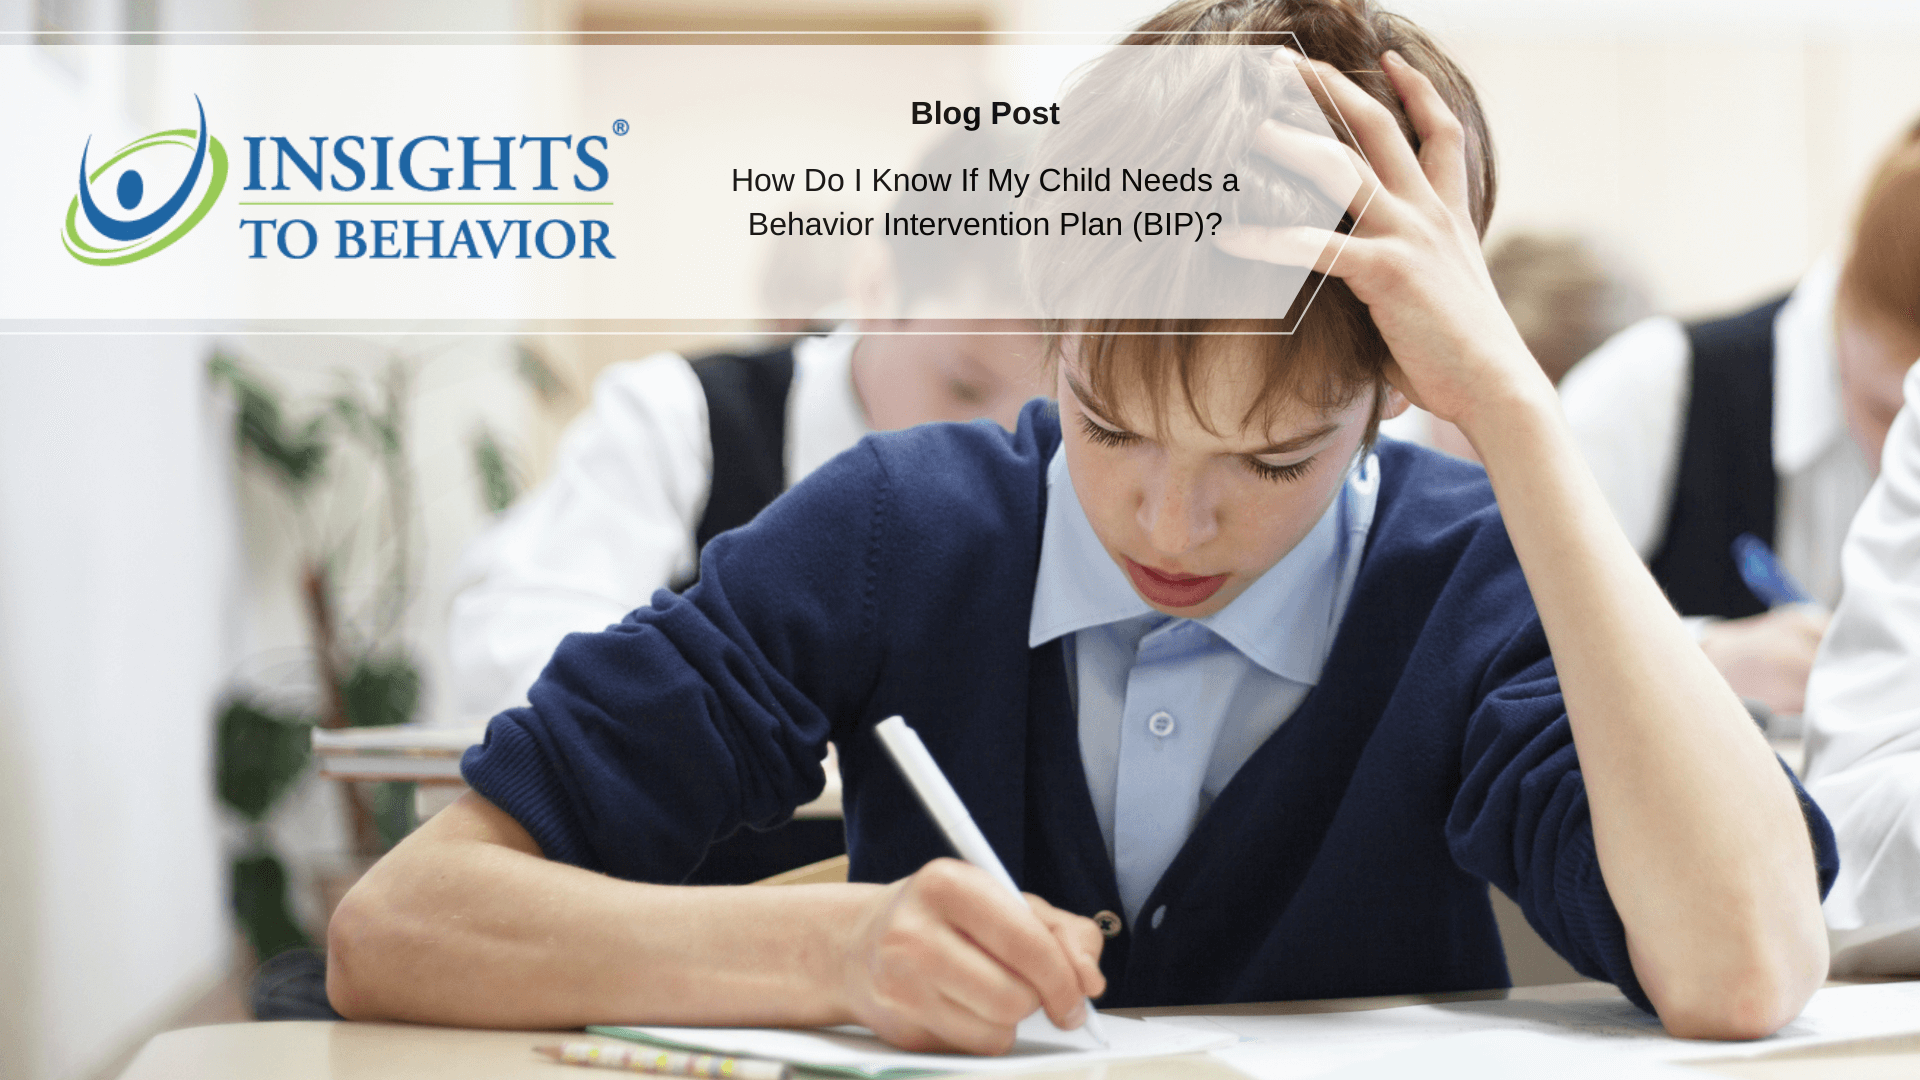 Insights to behavior blog post image template (17)